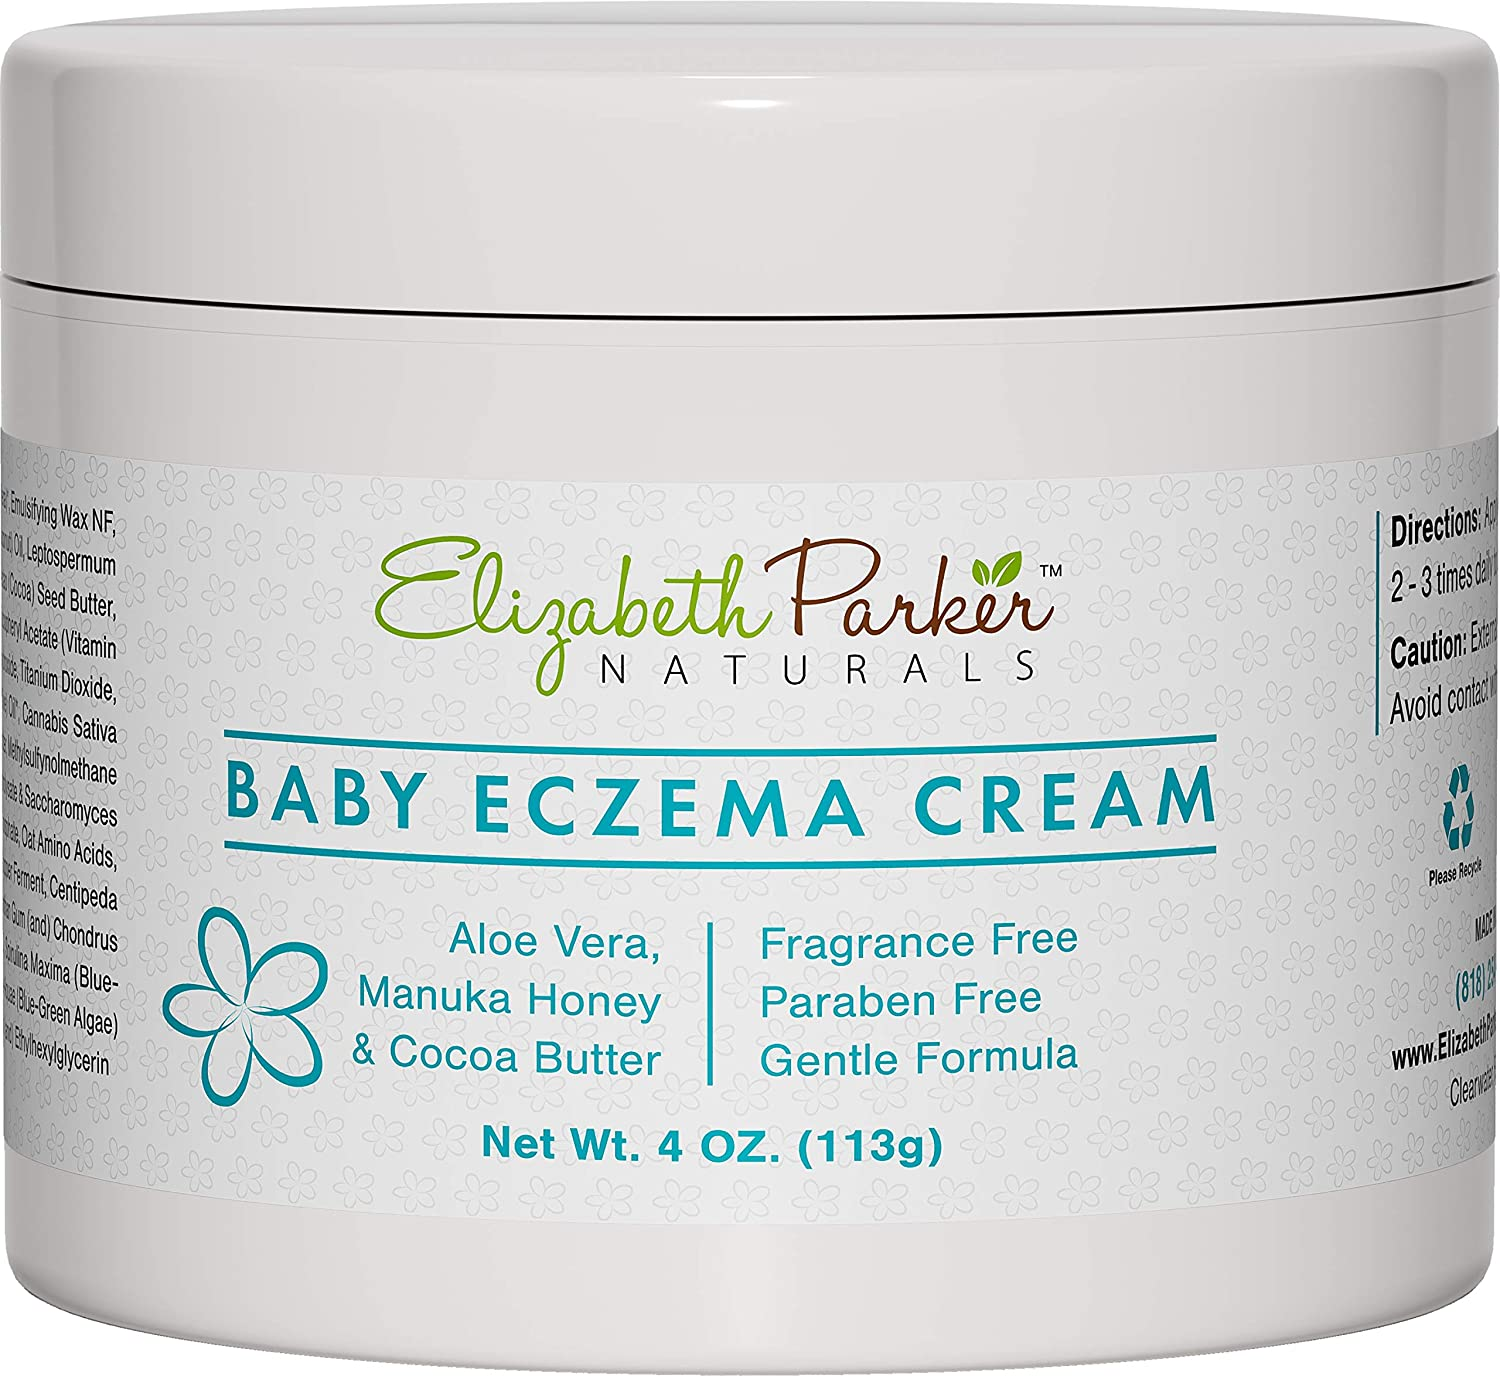 Lotion for Toddler Eczema - Baby Eczema Cream for Face & Body - Organic and Moisturizing Eczema Lotion with Manuka